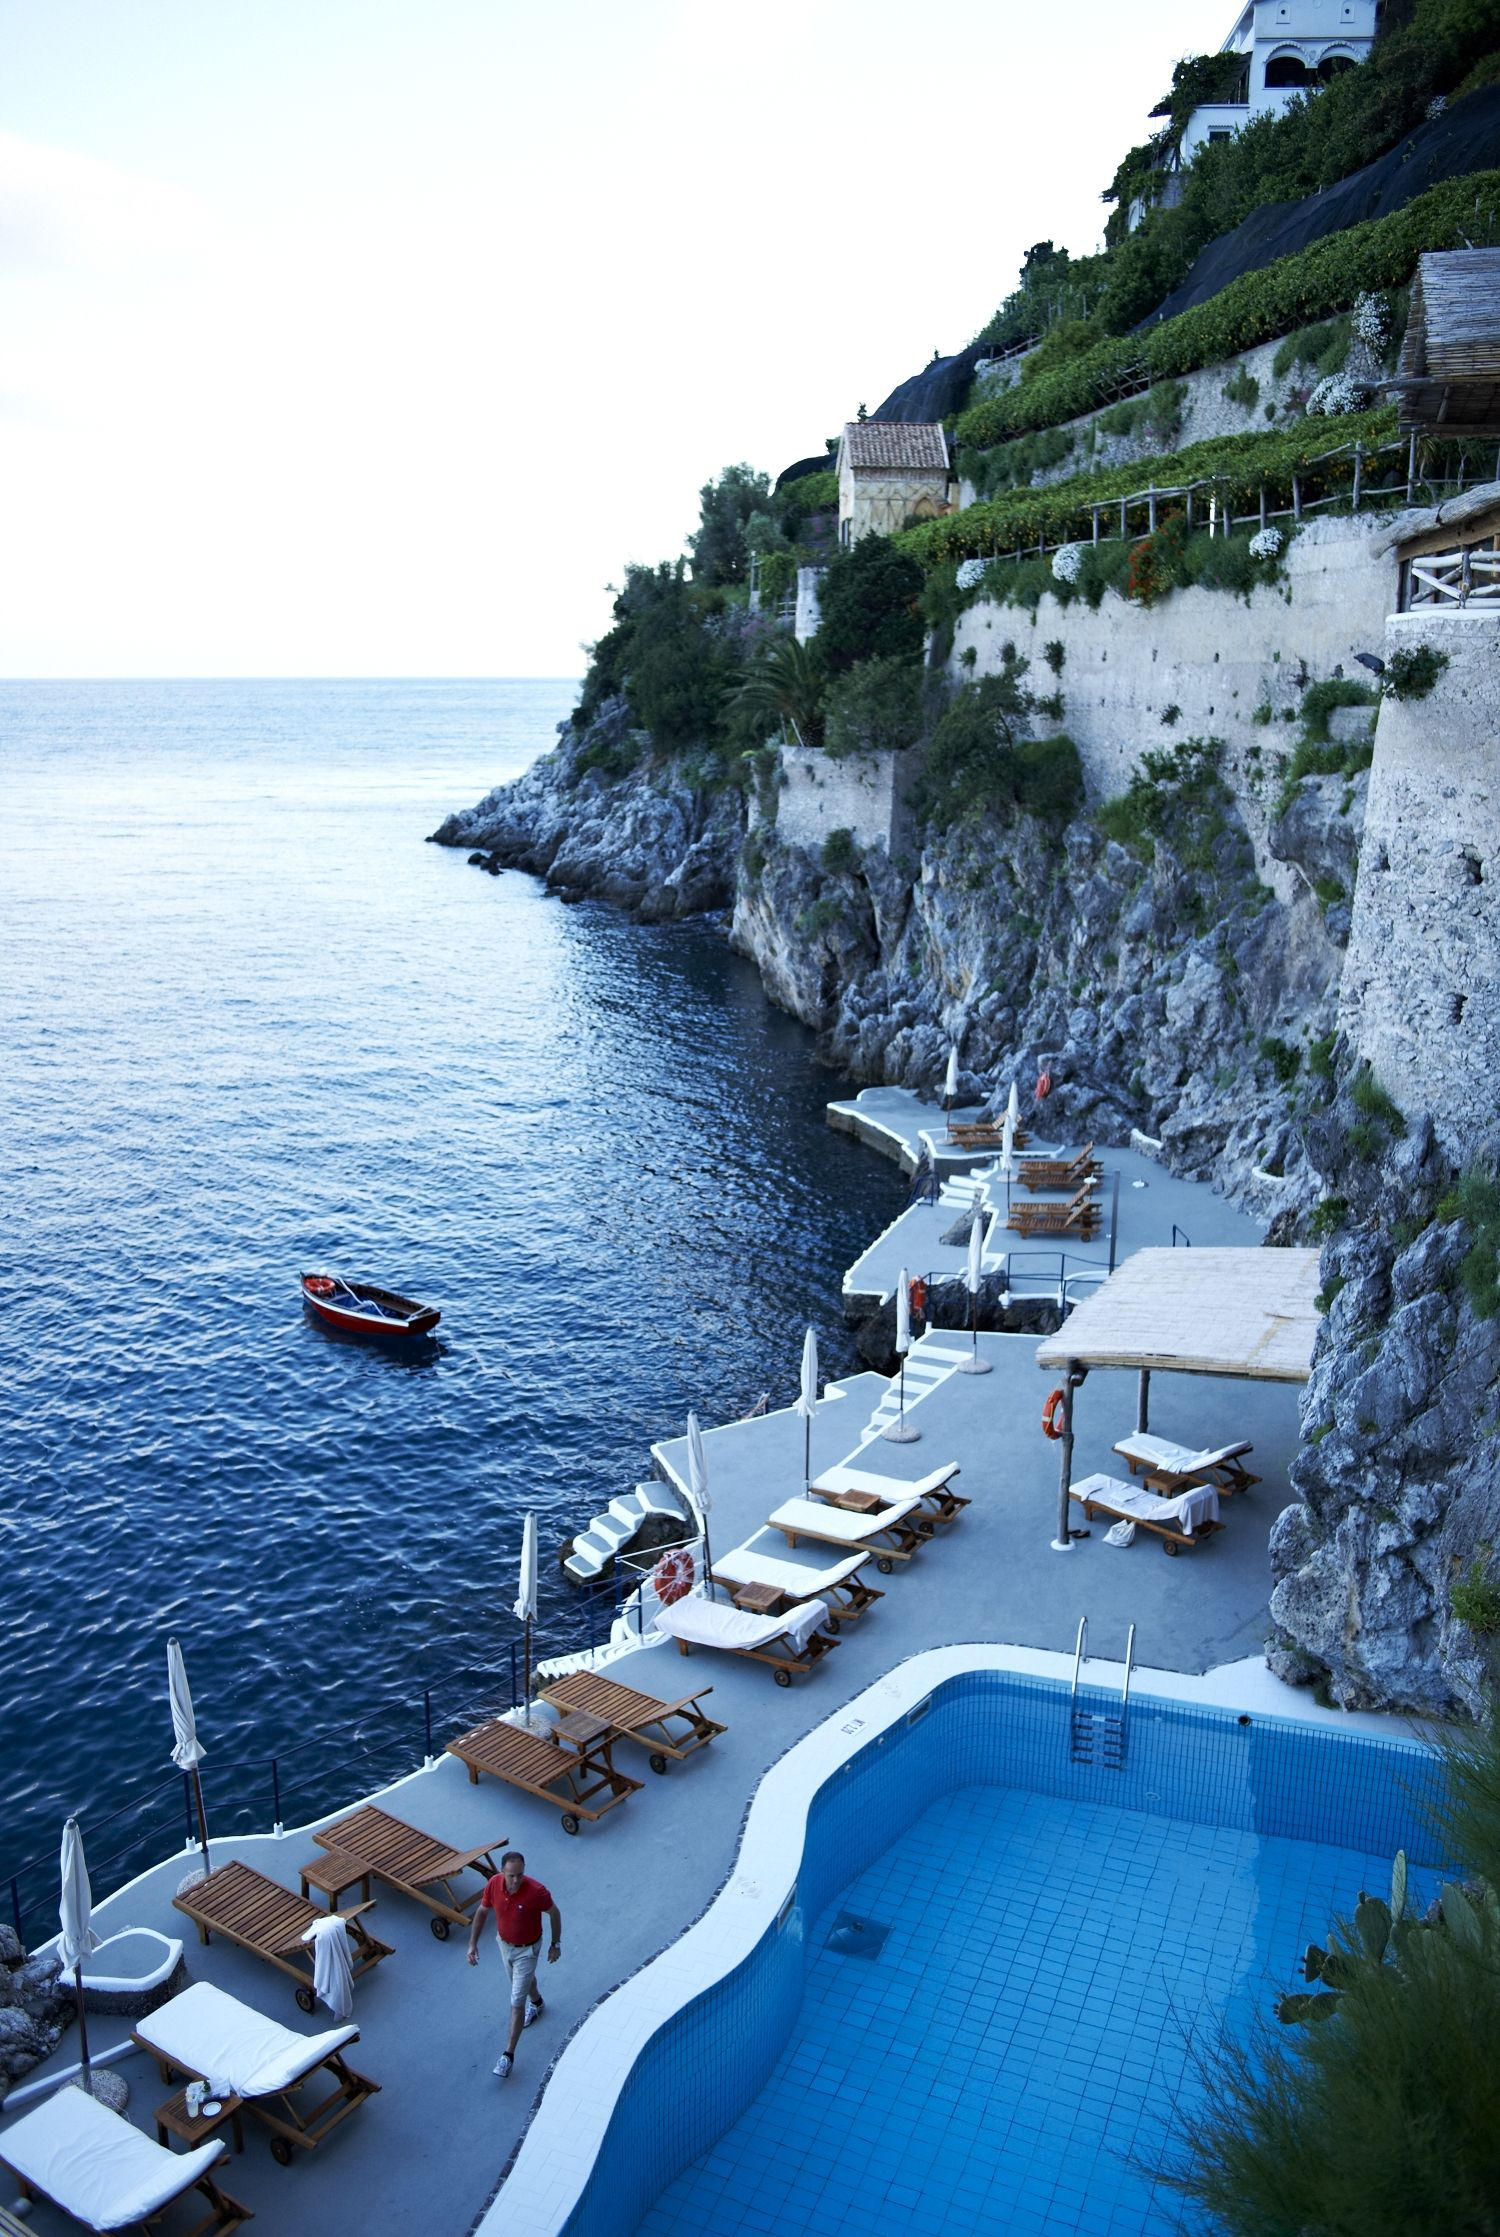 Hotel Santa Caterina On The Amalfi Coast Makes Our List And It S Not Only Because Of Incredible Views Perfect Location Amenities Are